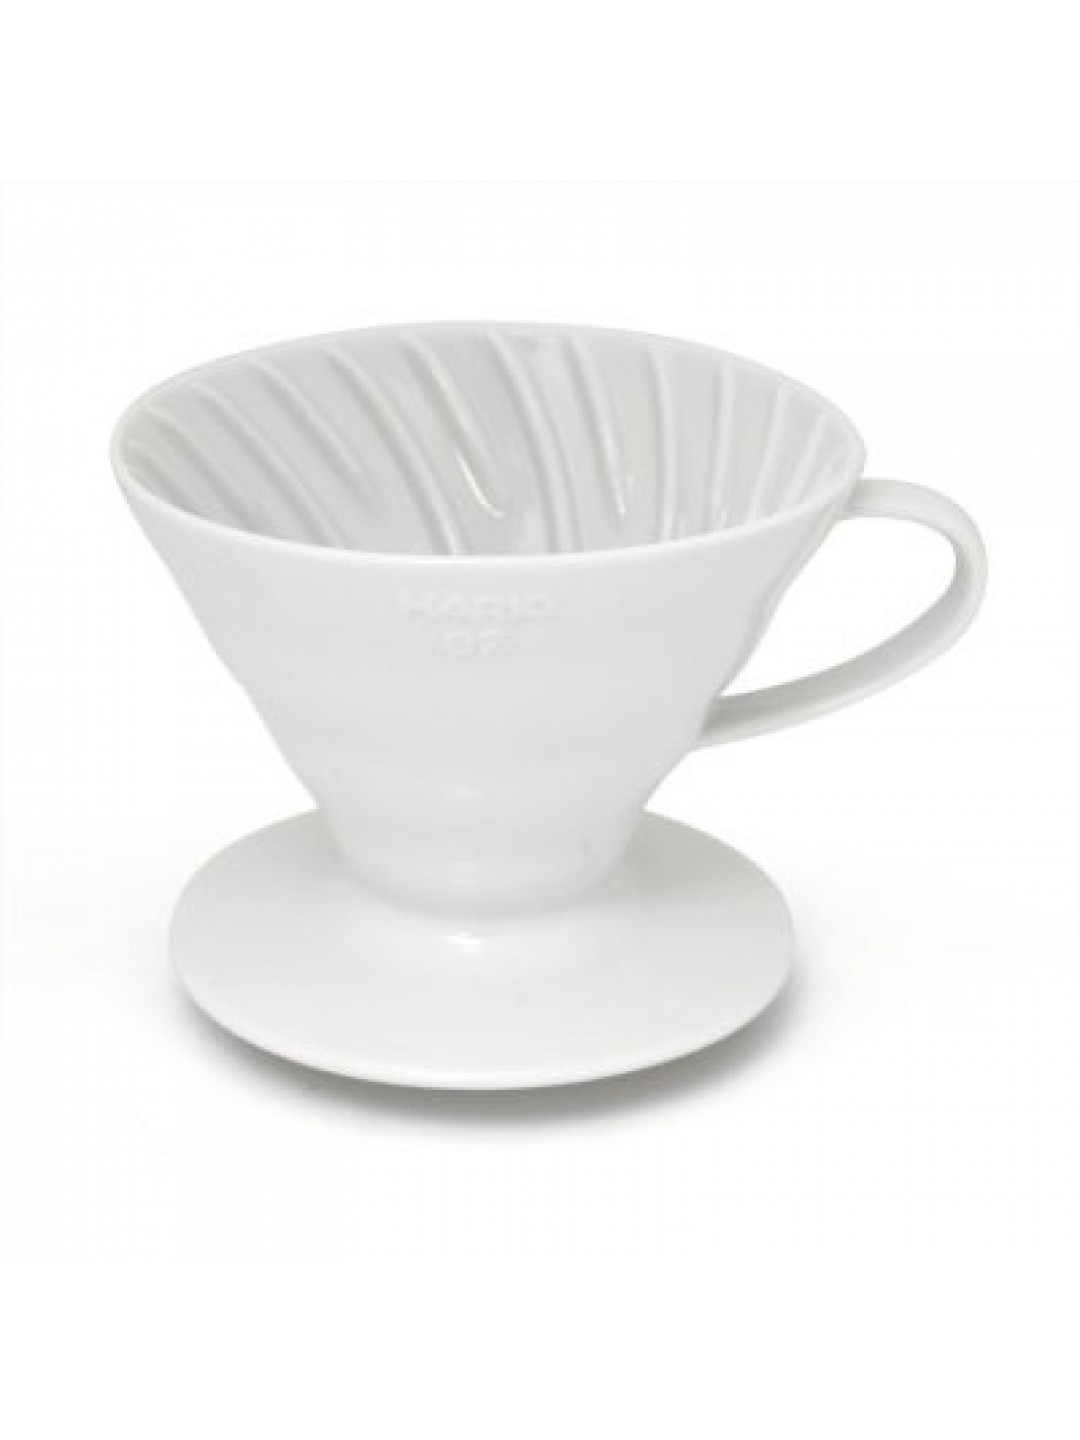 Hario Coffee Dripper V60 CERAMIC - 2 cups